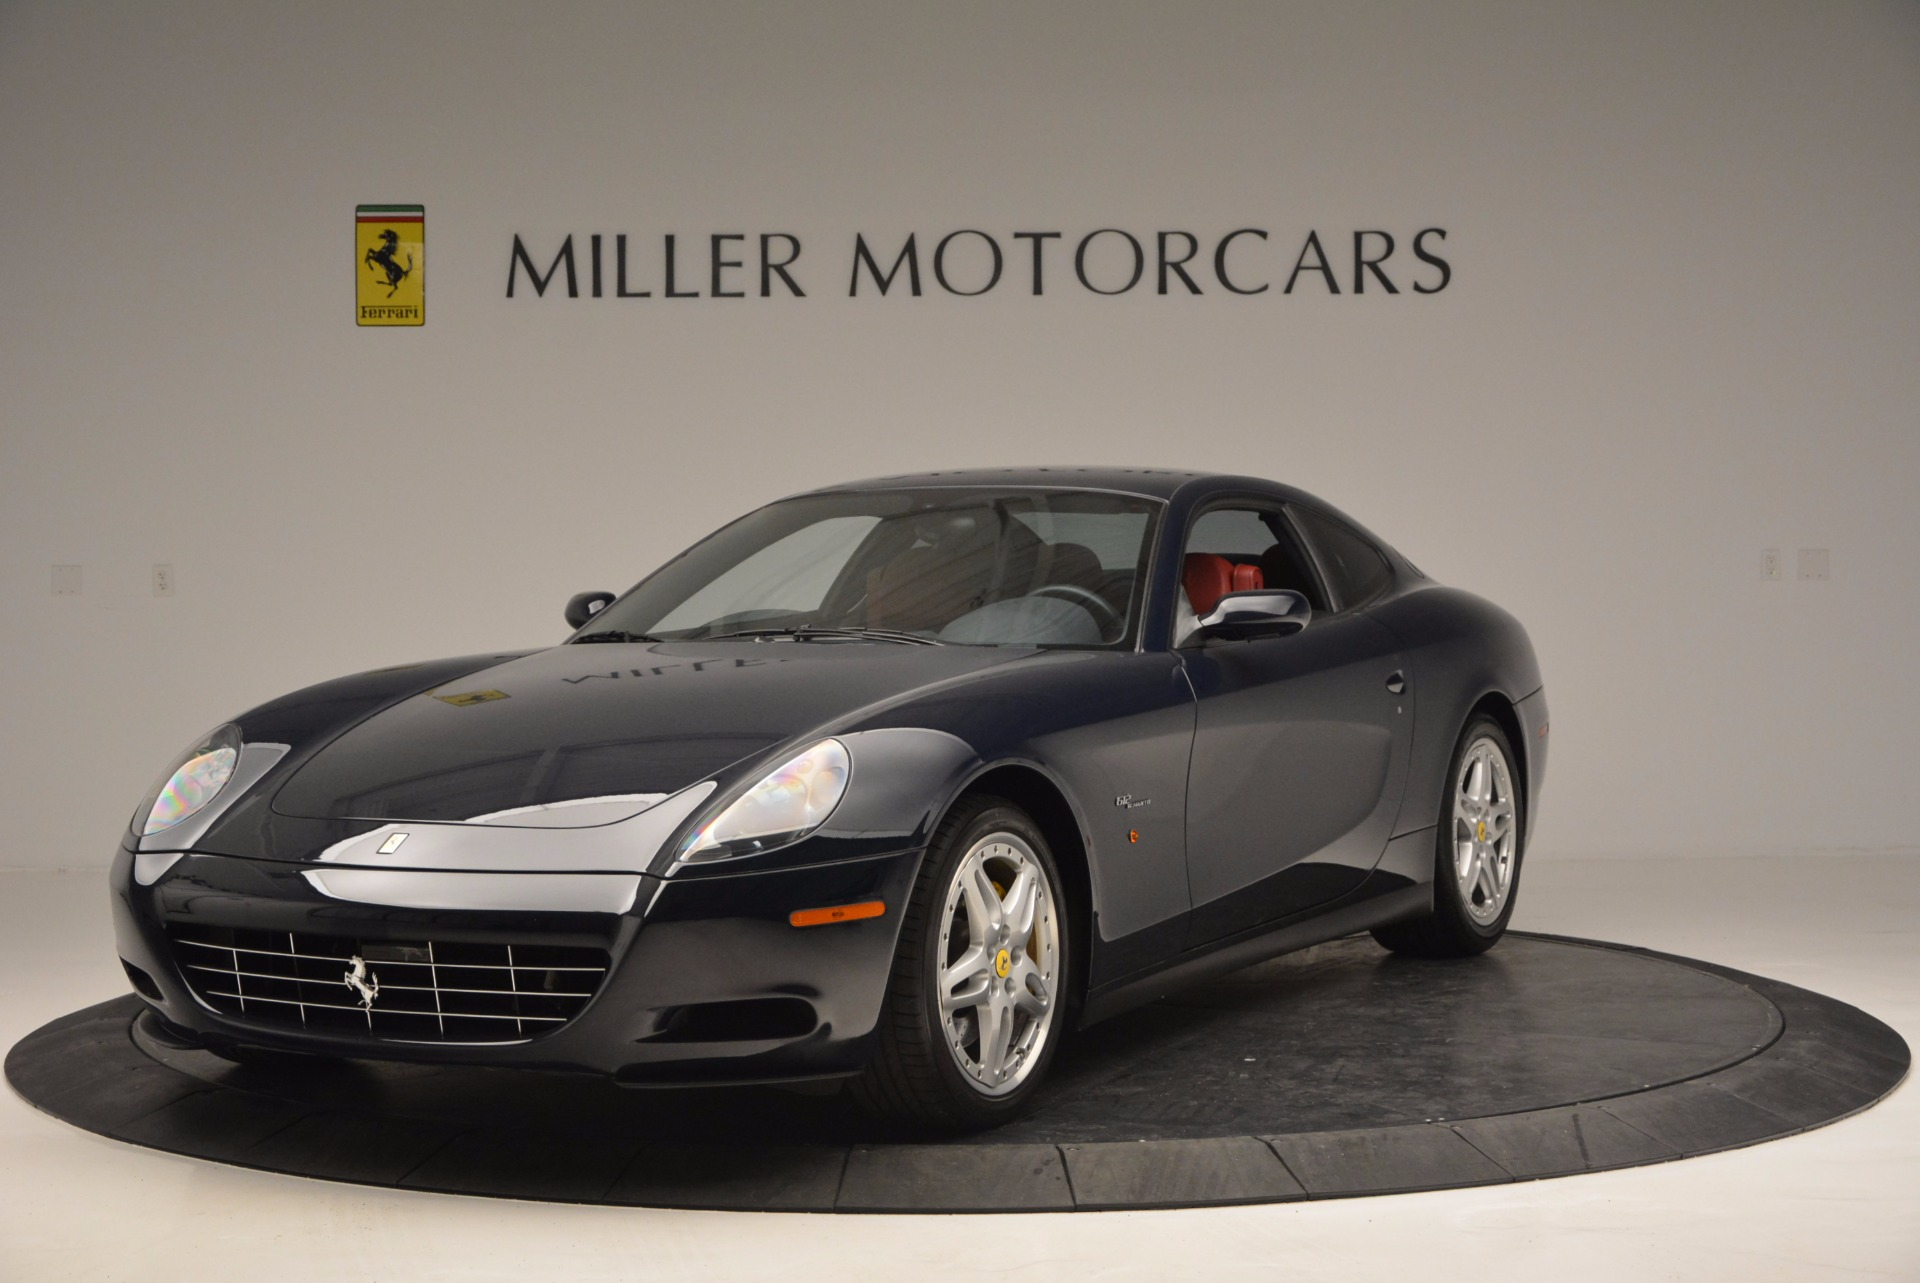 Used 2005 Ferrari 612 Scaglietti 6-Speed Manual for sale Sold at Alfa Romeo of Westport in Westport CT 06880 1